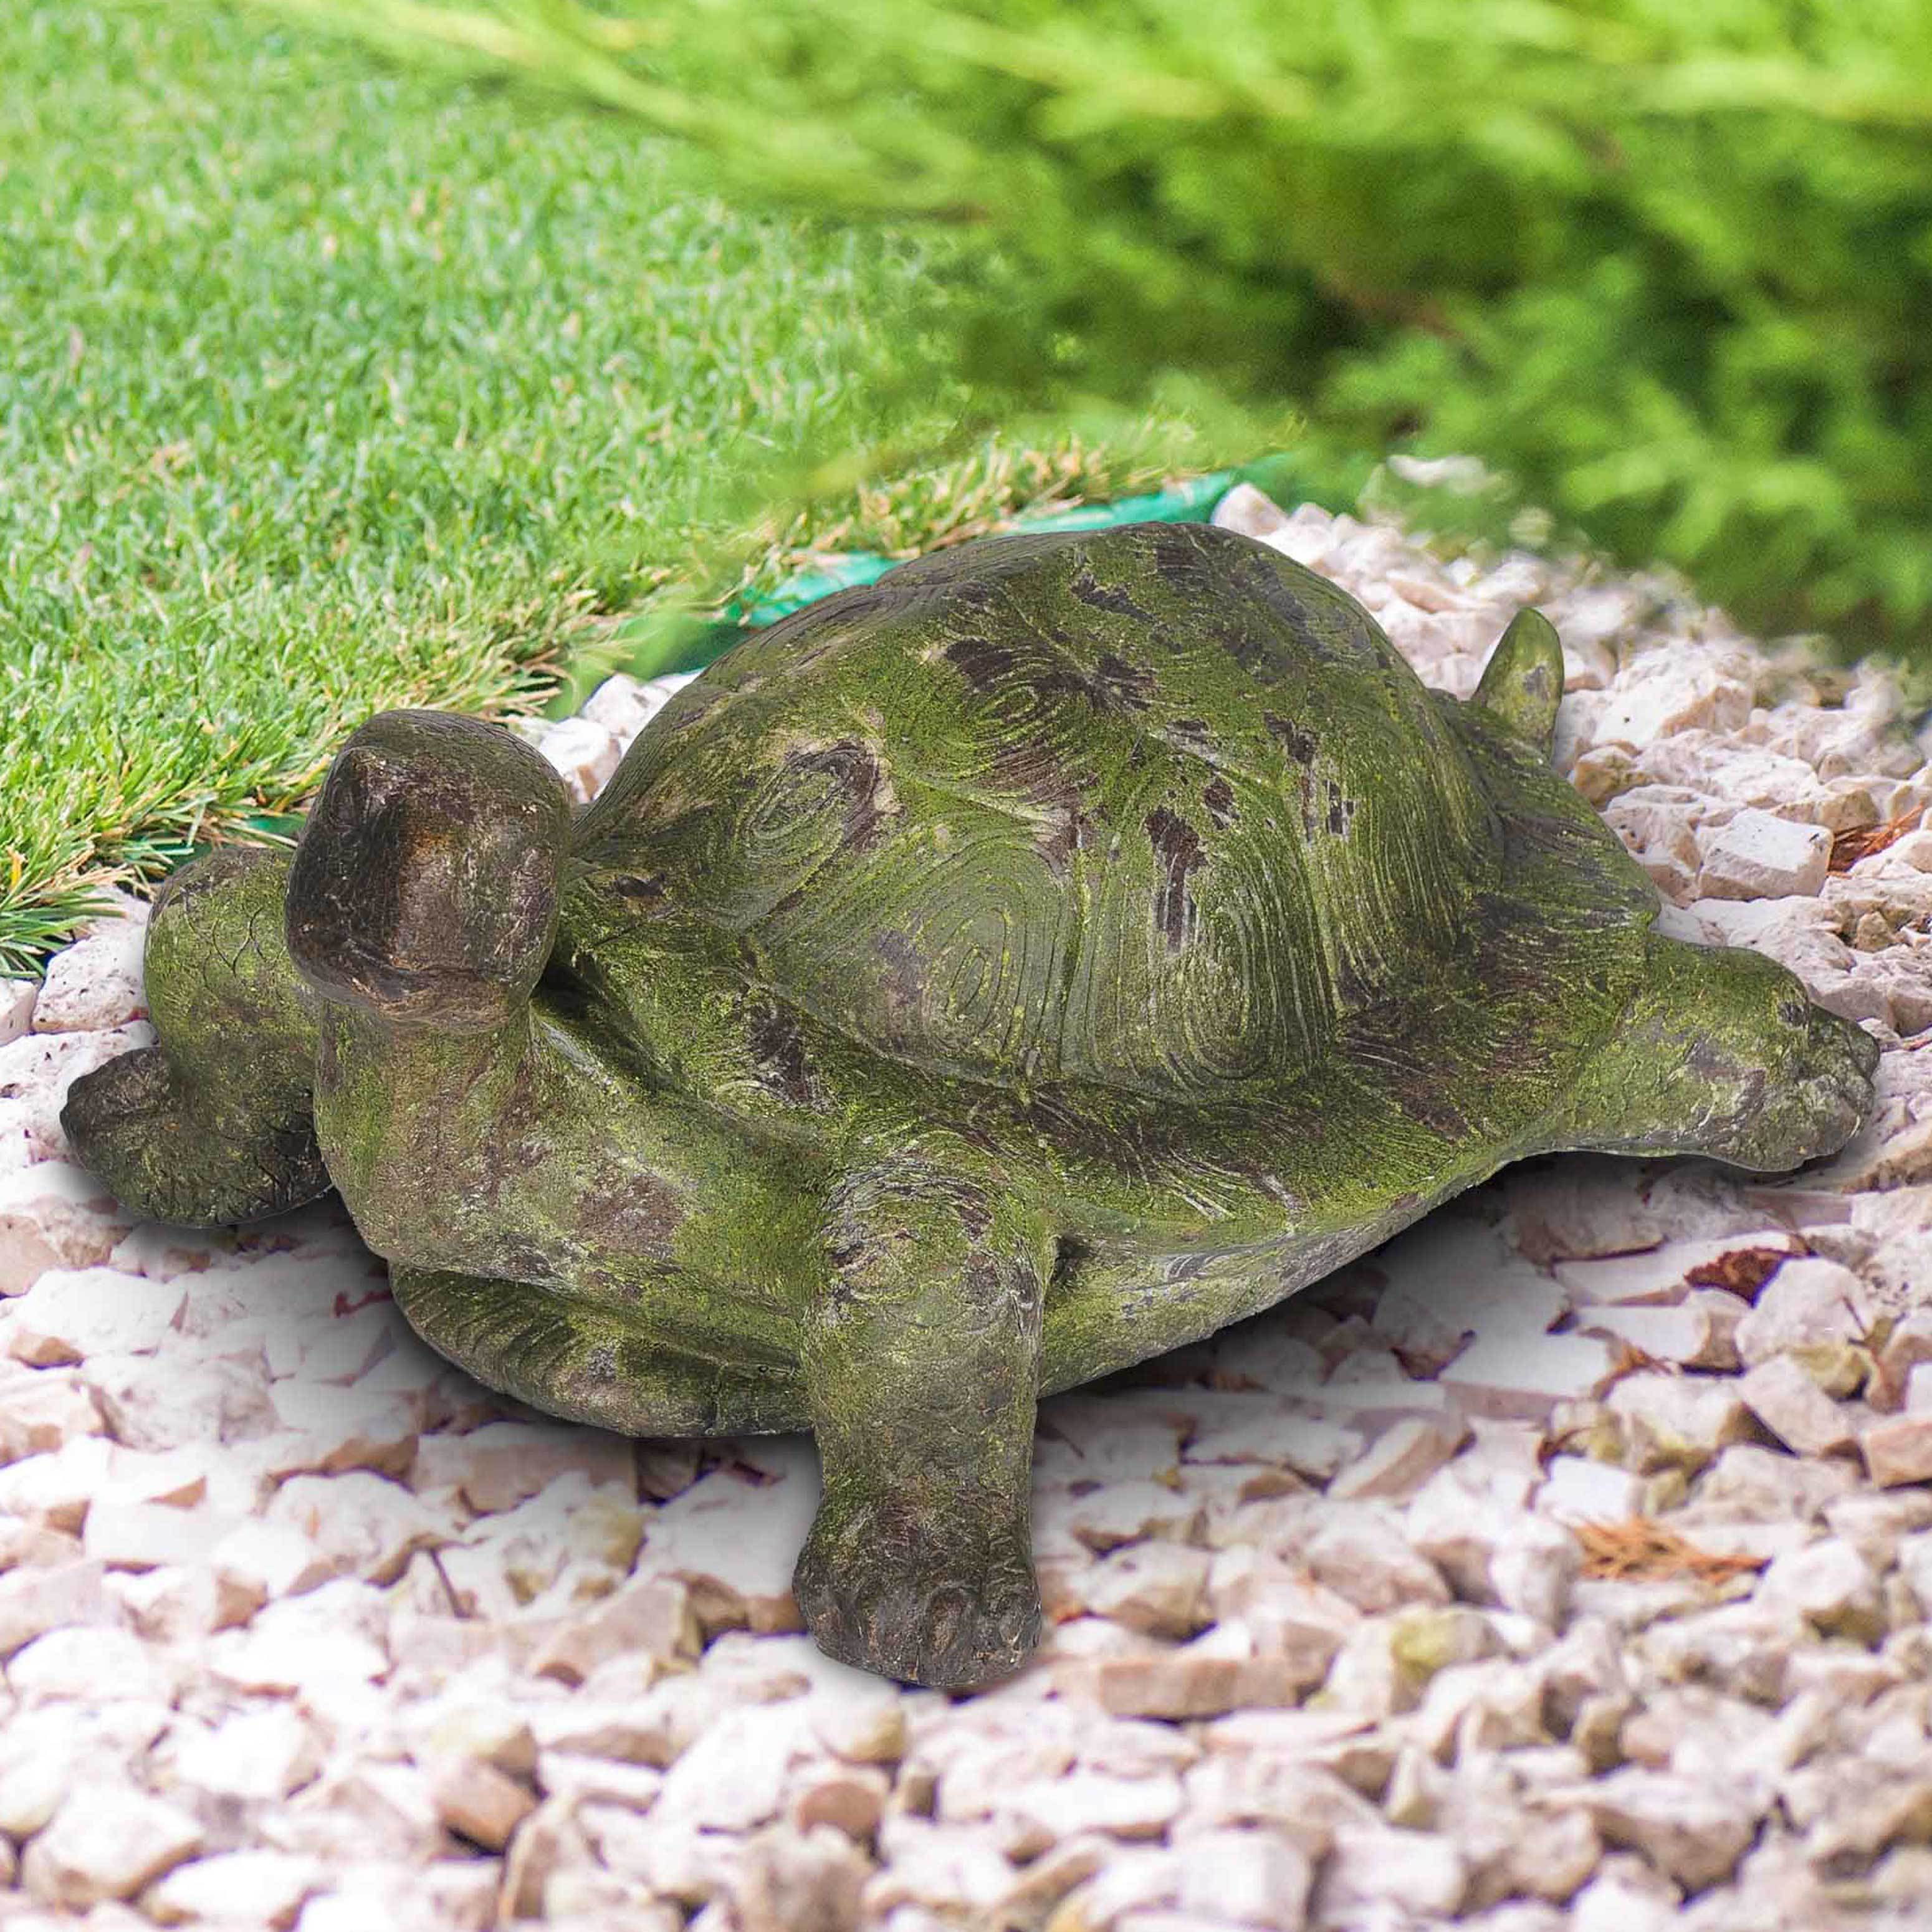 Sunjoy Large Garden Tortoise Statue, Resin with Rustic Green Finish ...